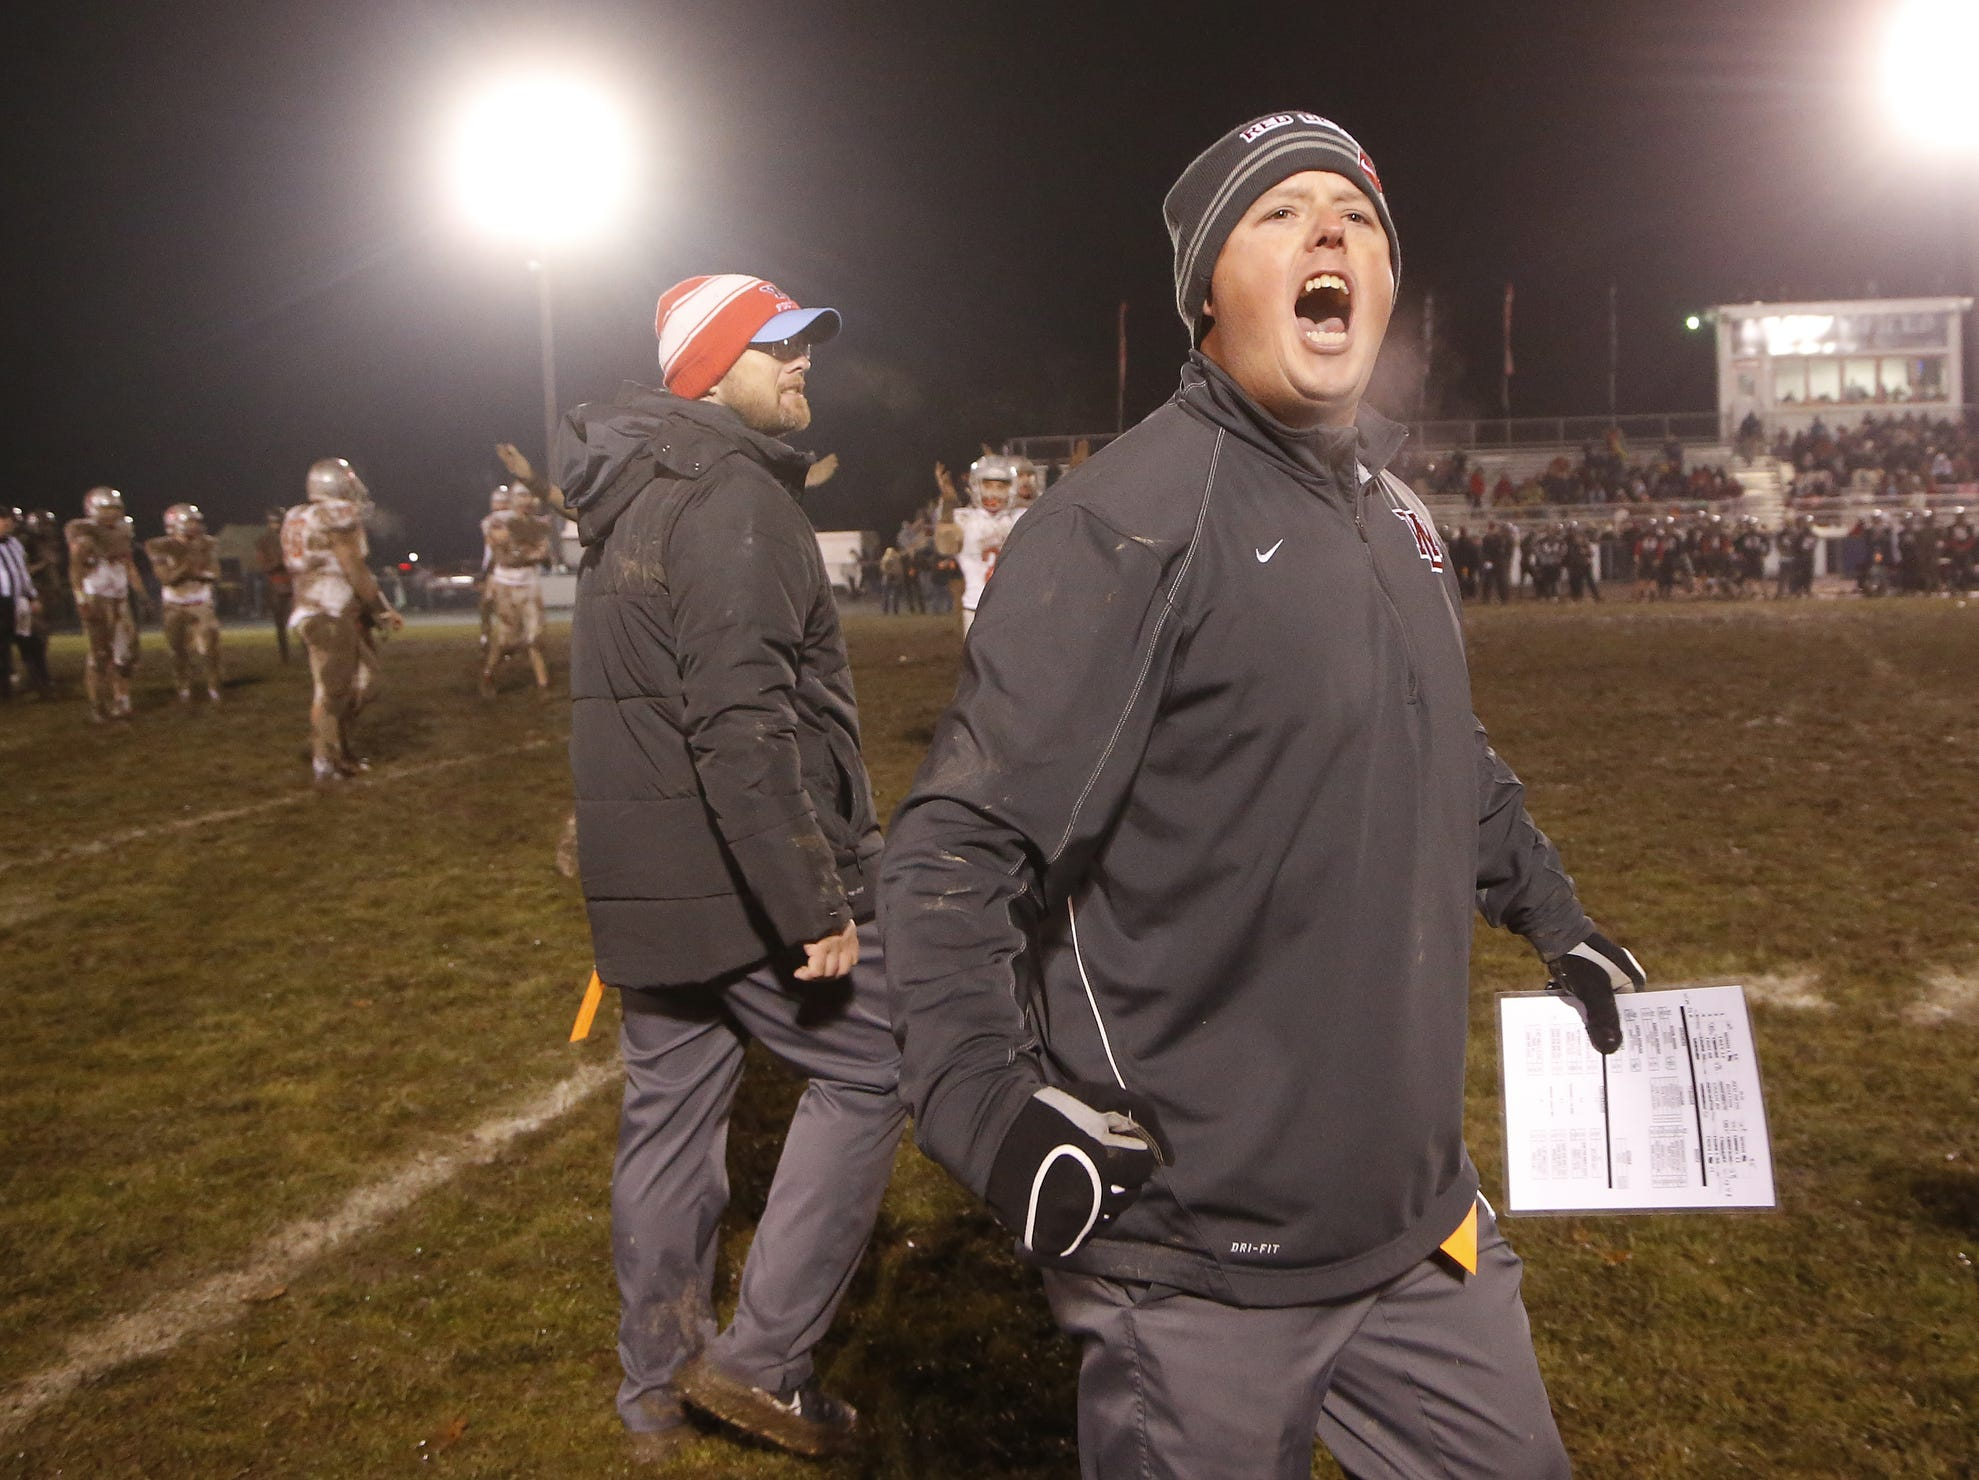 West Lafayette head coach Shane Fry turns to the Red Devils faithful and lets out a scream as time expires against Ft. Wayne Bishop Luers Friday, November 16, 2018, in Ft. Wayne. West Lafayette scored 27 unanswered points in the second half to come from behind and defeat Bishop Luers 27-14.